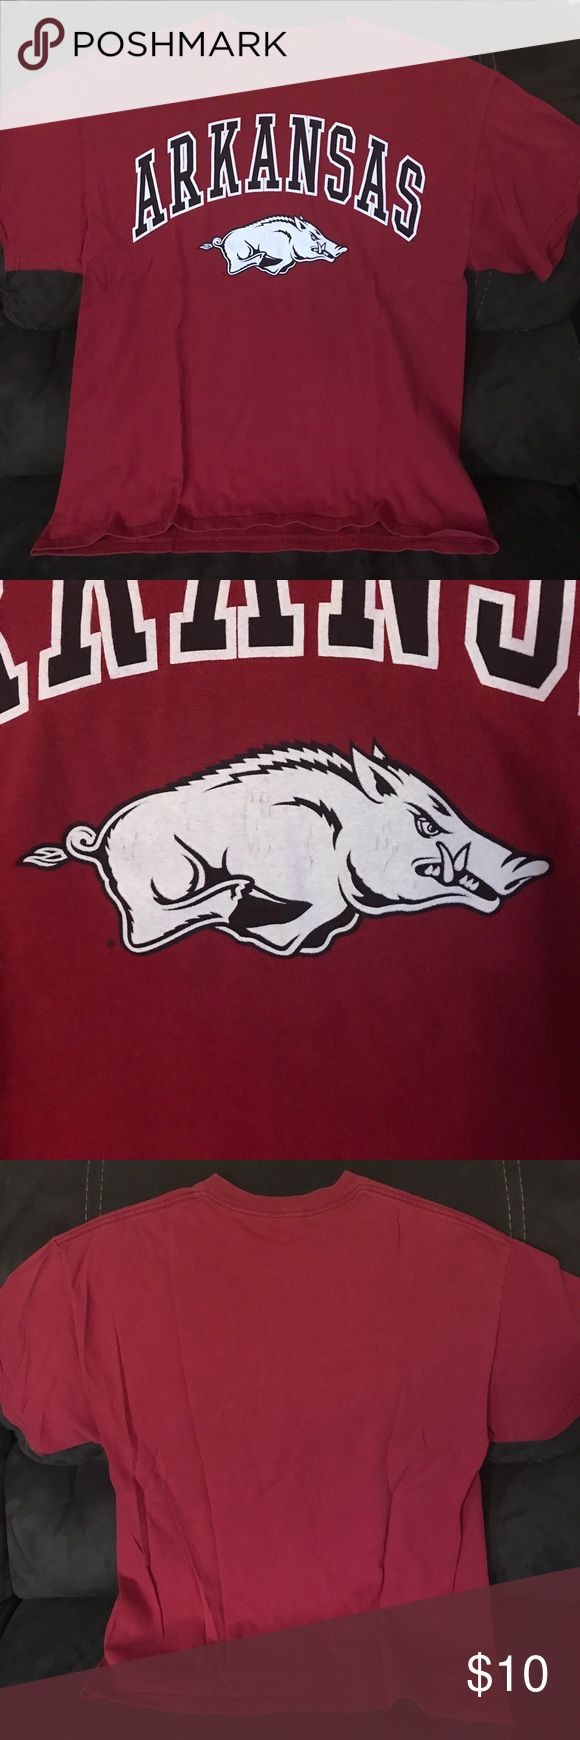 Arkansas Razorbacks Tee Faded red men's size large. Some minor cracking in the design Shirts Tees - Short Sleeve